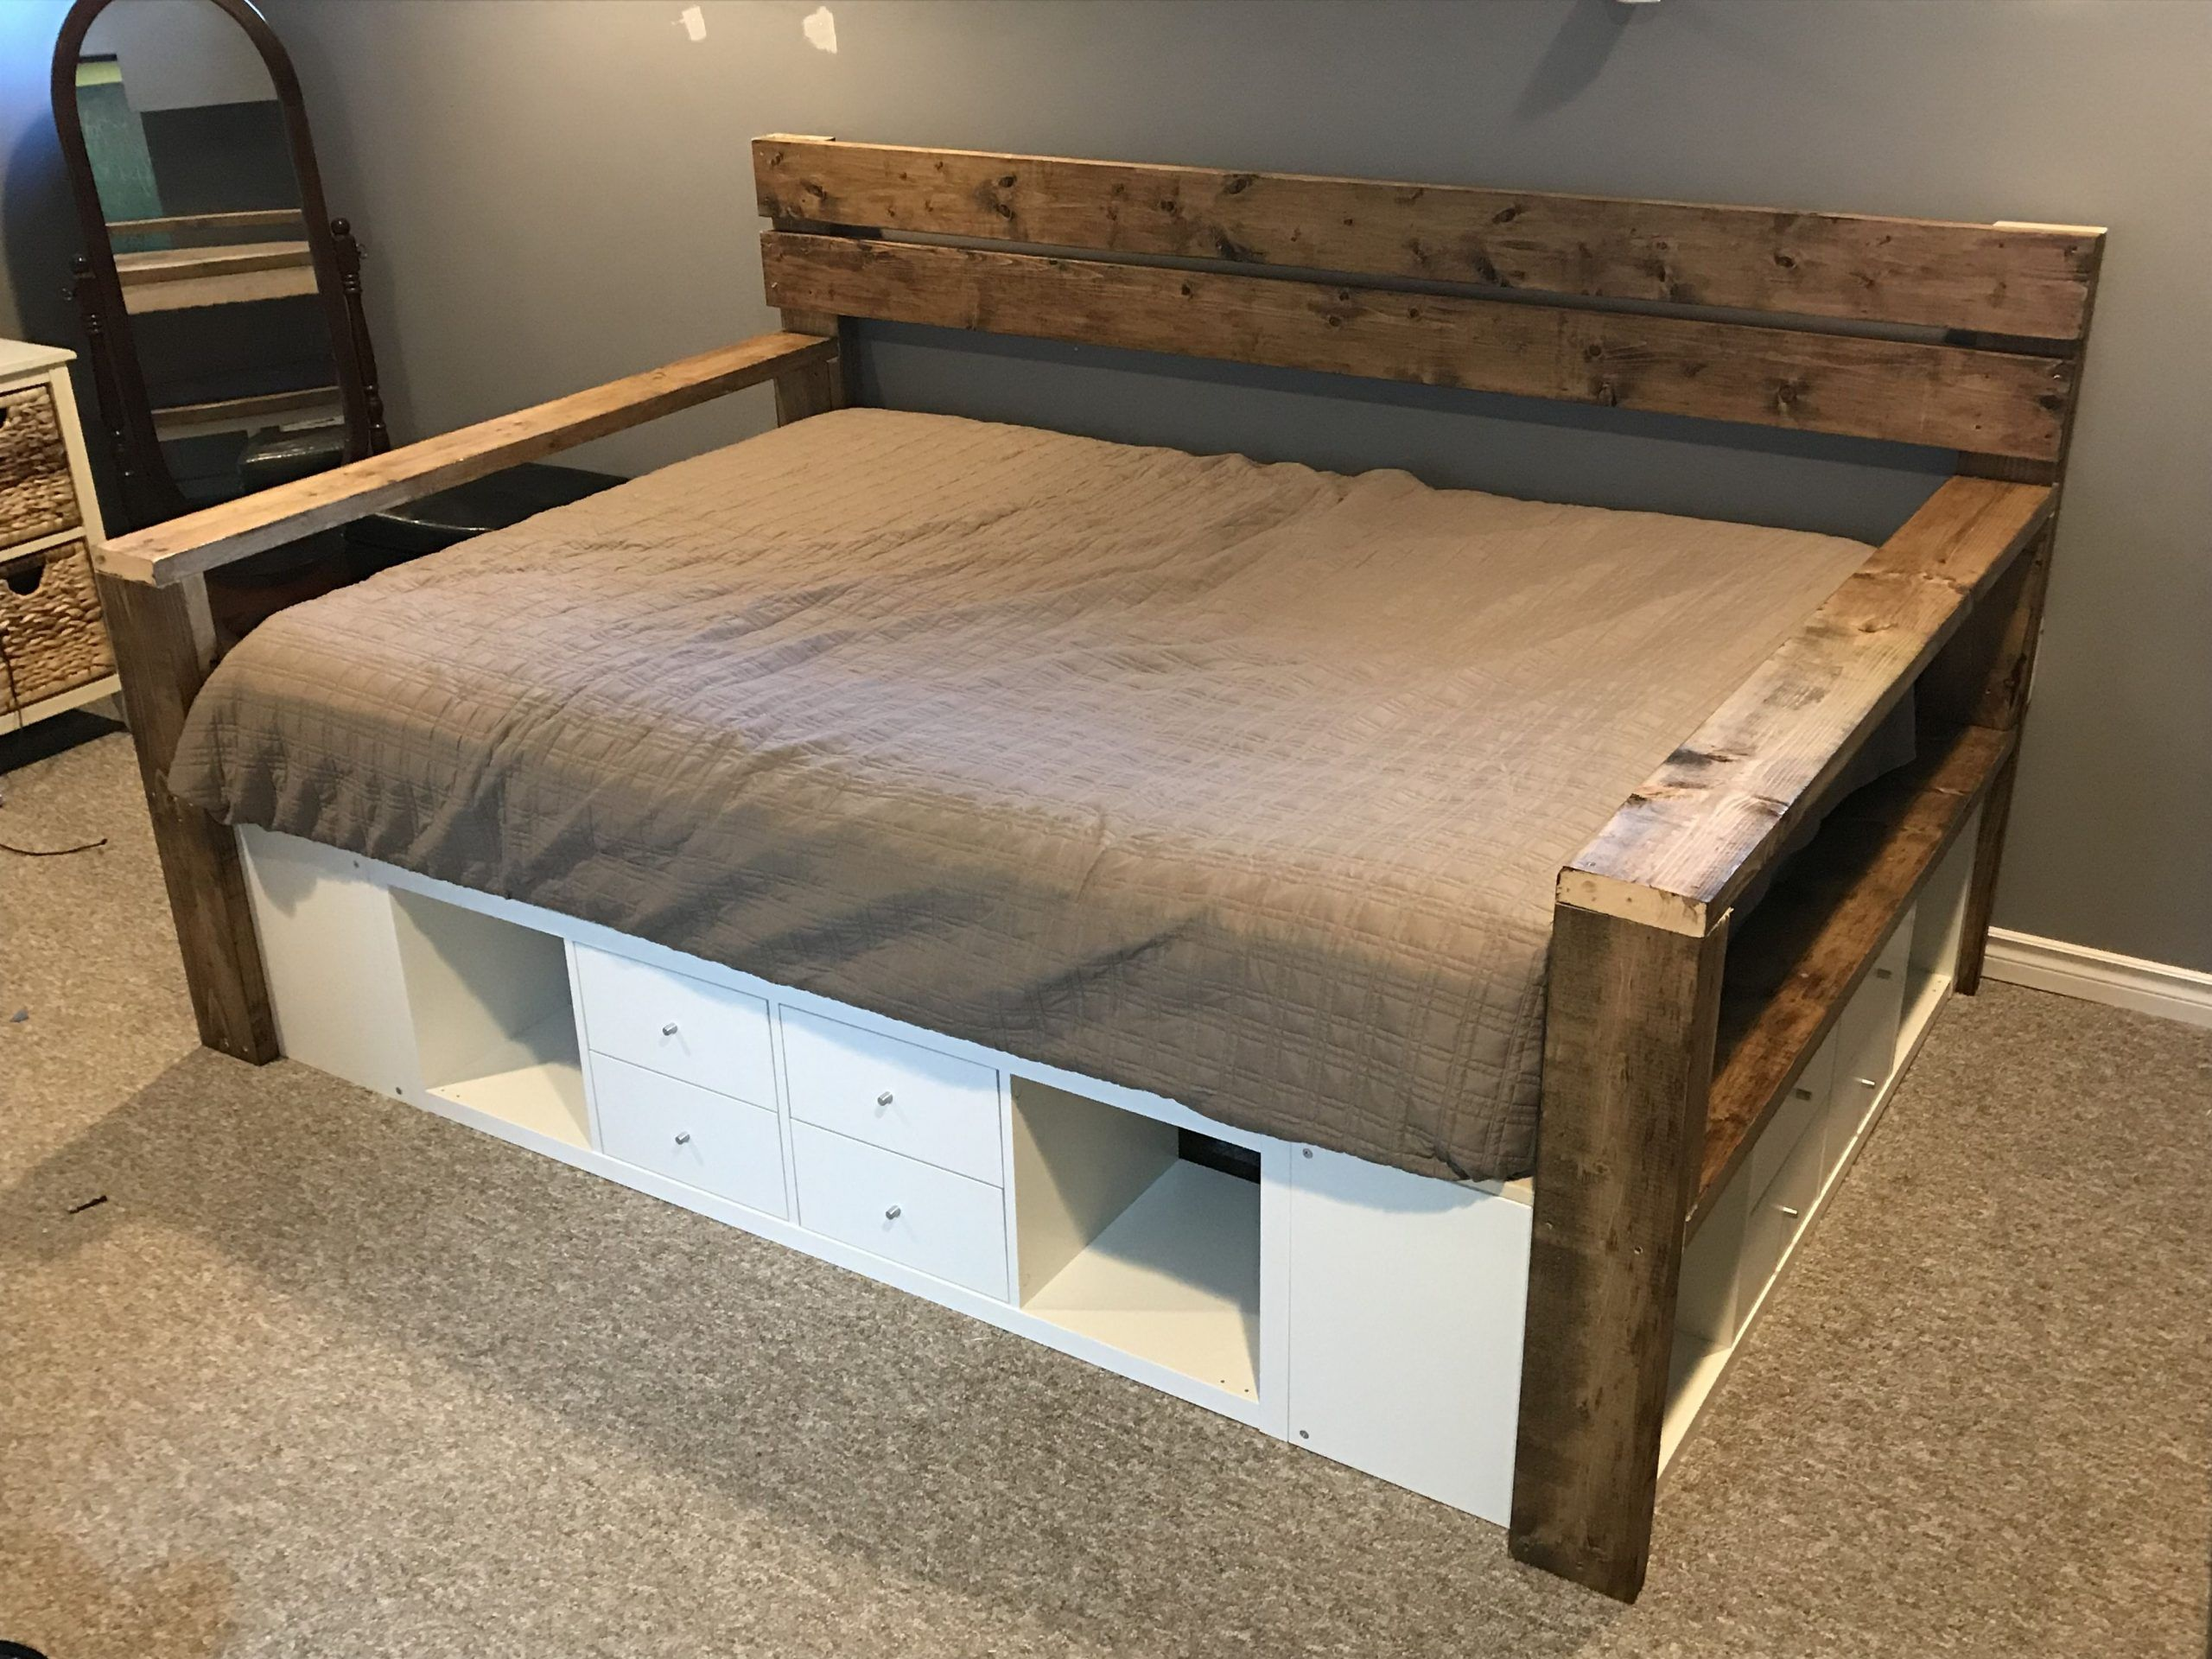 Our Ikea Hack Queen Size DayBed! in 2020 Queen daybed